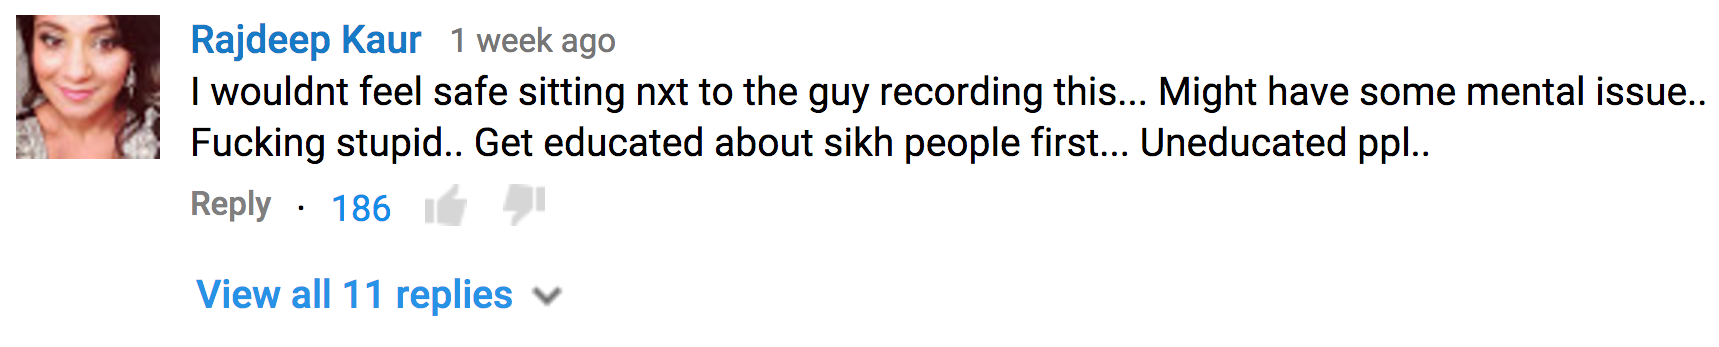 Racist Gets Comeuppance After Posting Video Of Sikh Man Online Screen Shot 2015 12 19 at 11.00.53